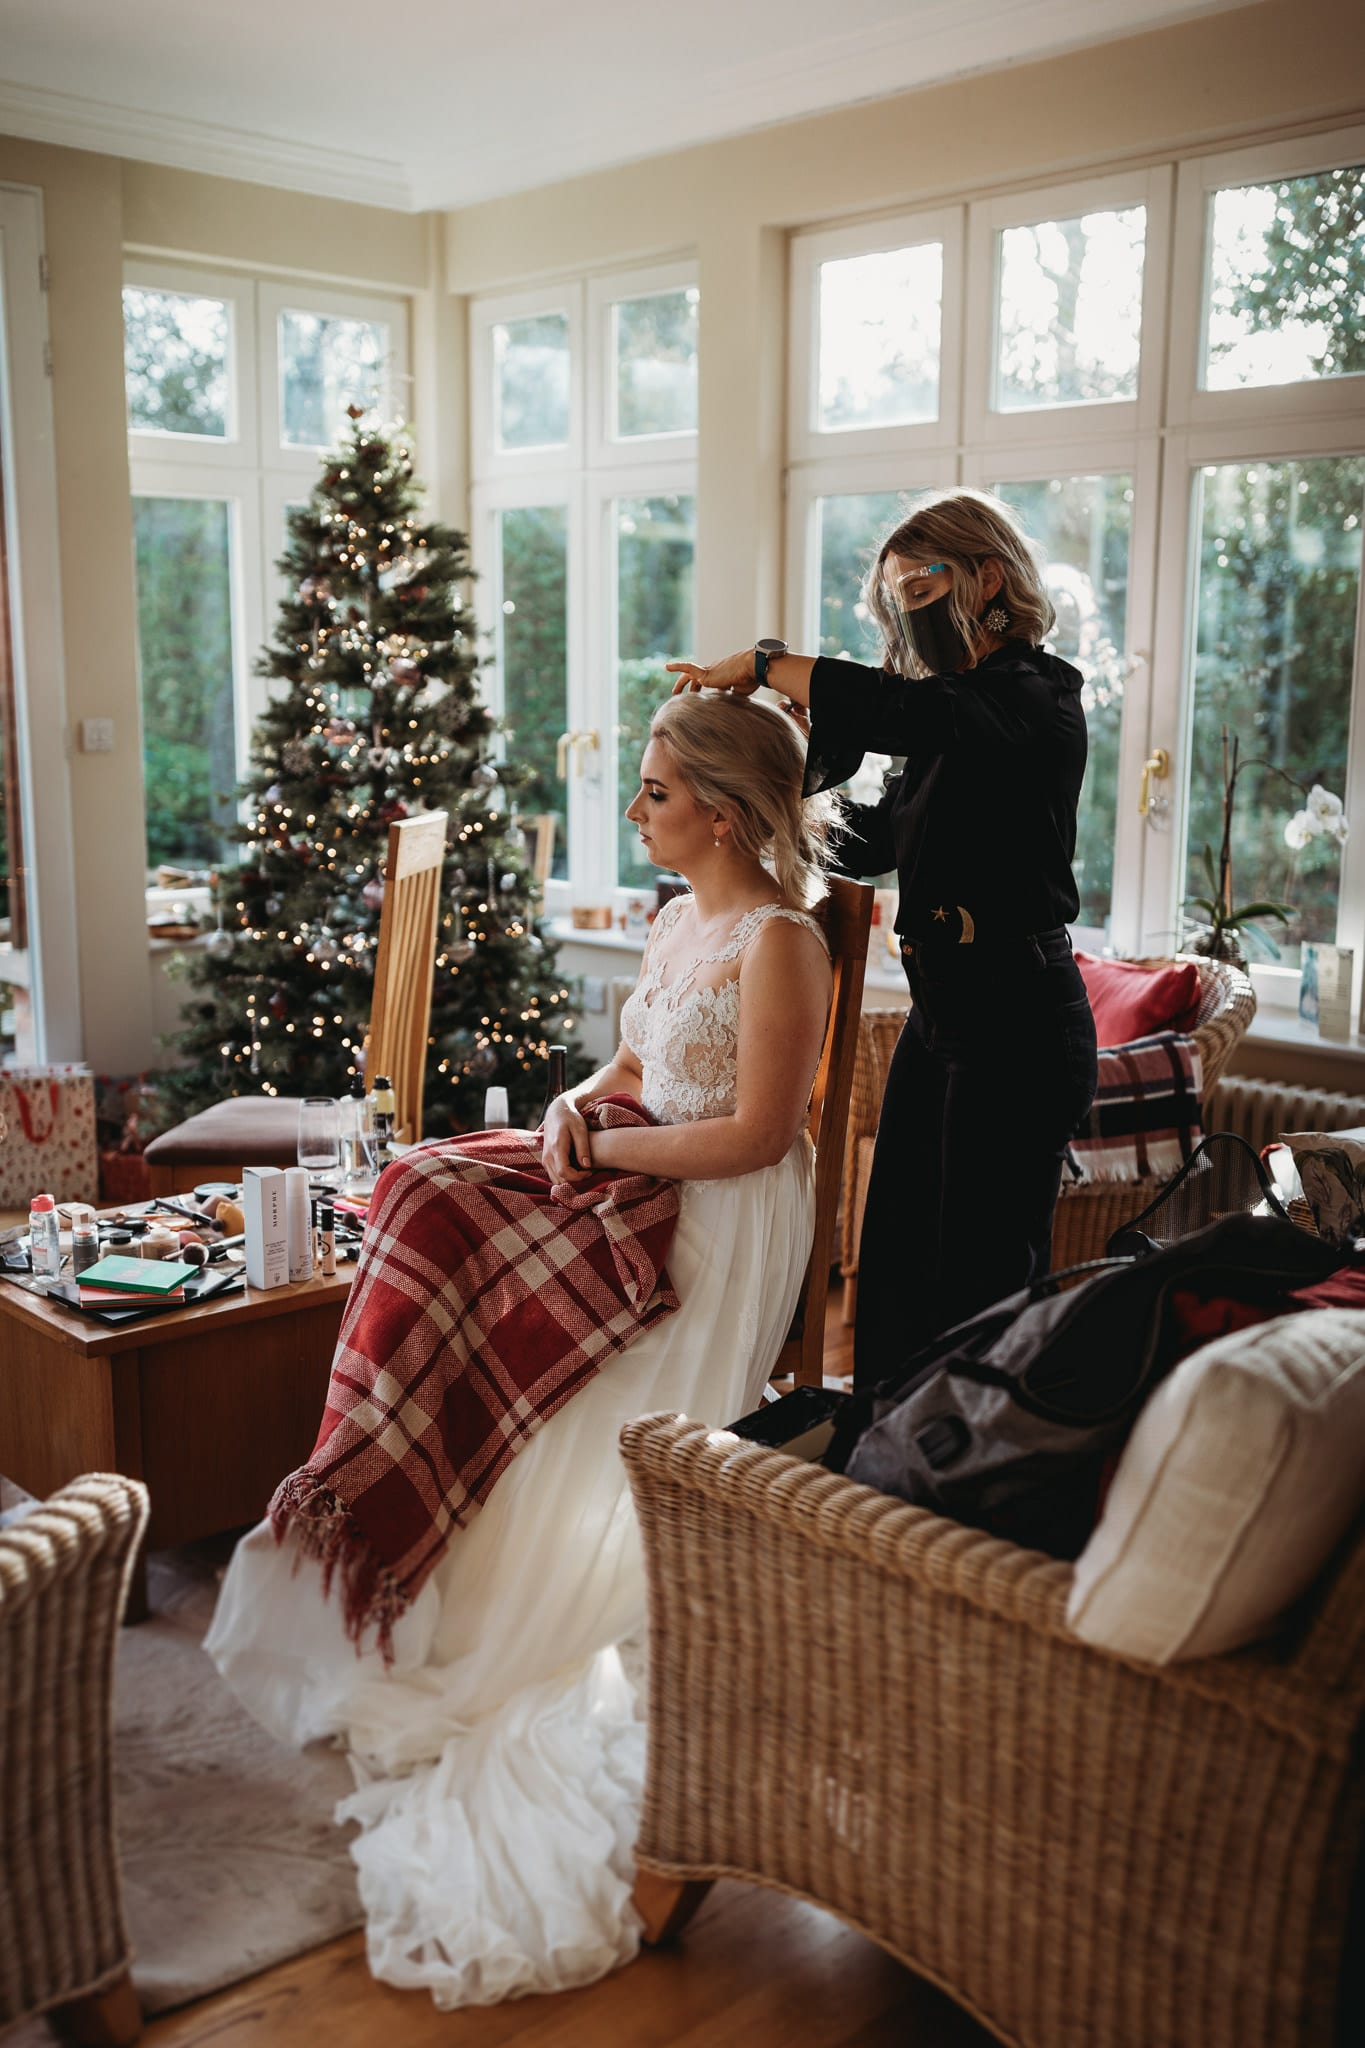 bride having her hair done in front of a christmas tree, holding a chequered blanket on her lap